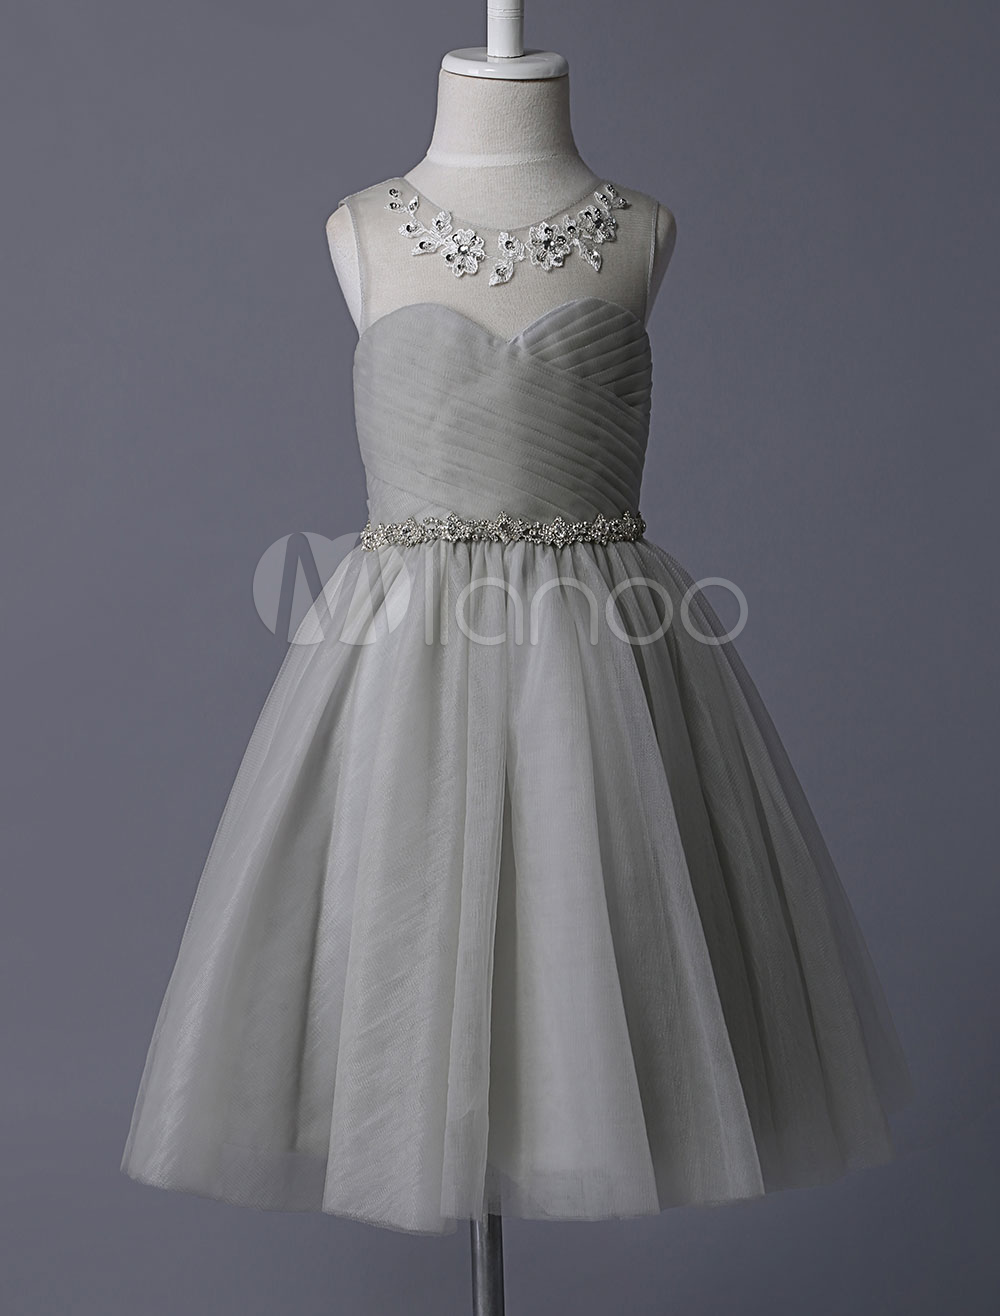 Grey Flower Girl Dresses Illusion Neckline Sequined Embroidered Tulle With Rhinestone Beaded Tutu Kids Party Dresses